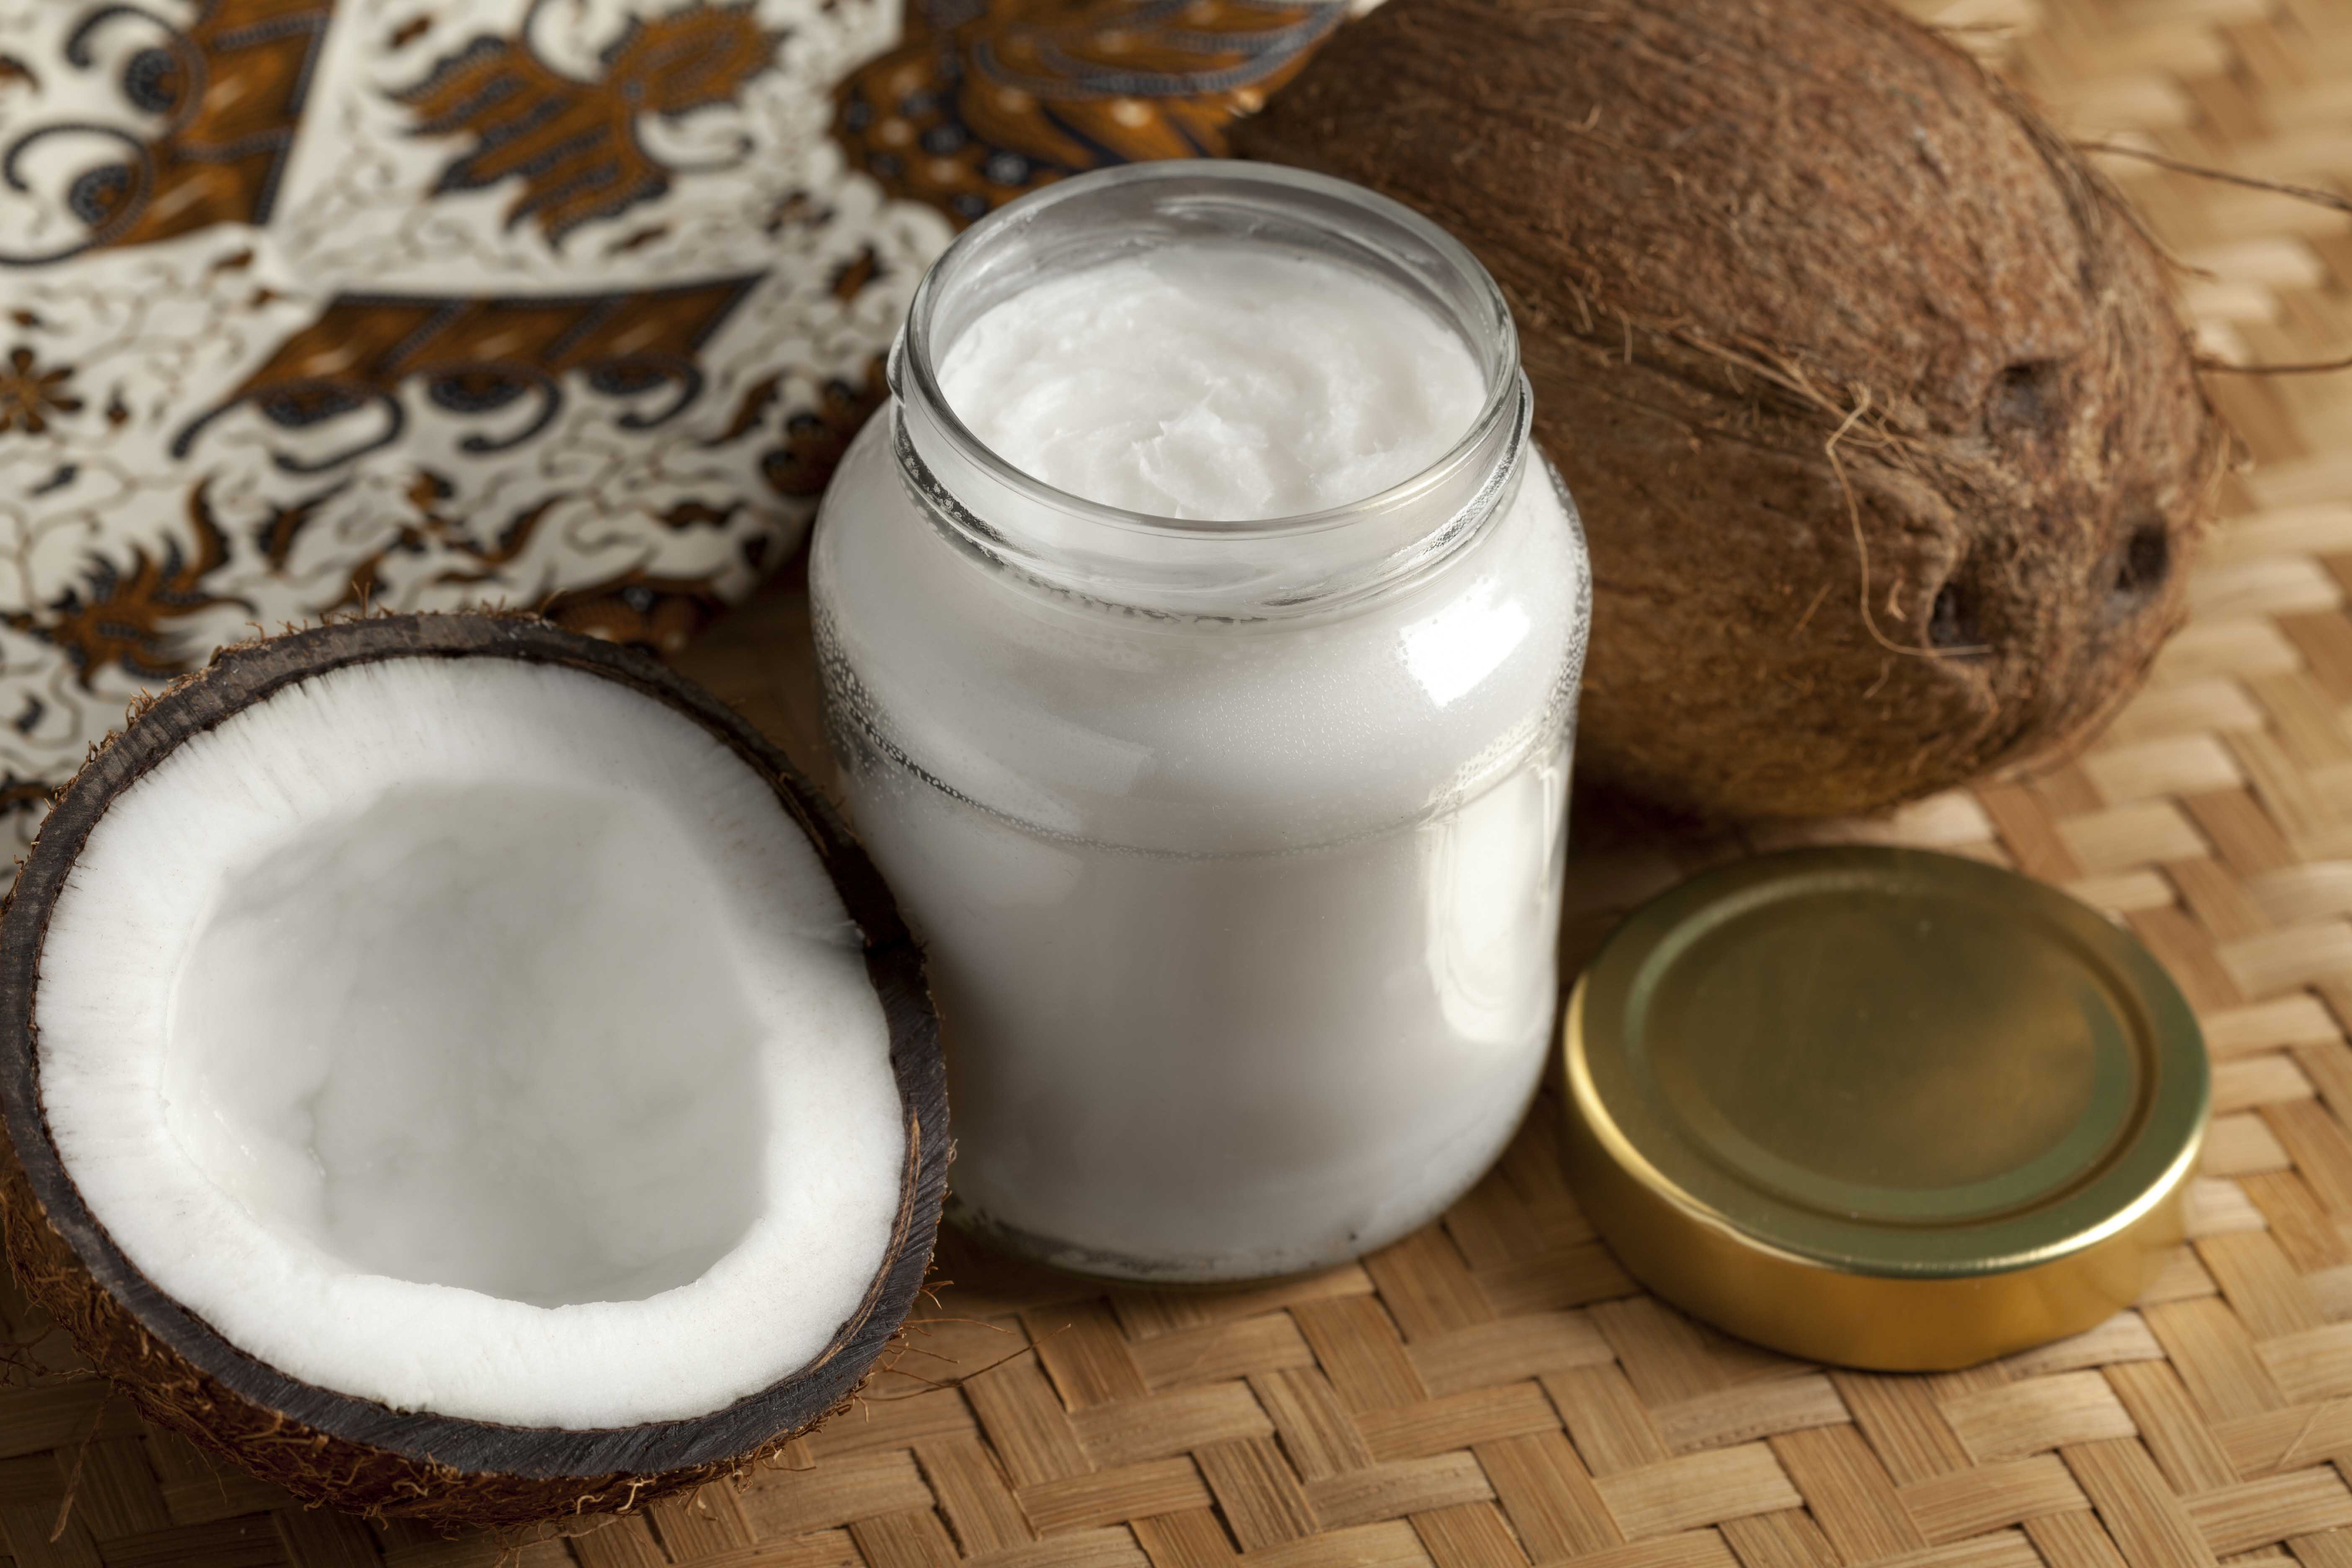 Coconut oil isn't that good for you after all